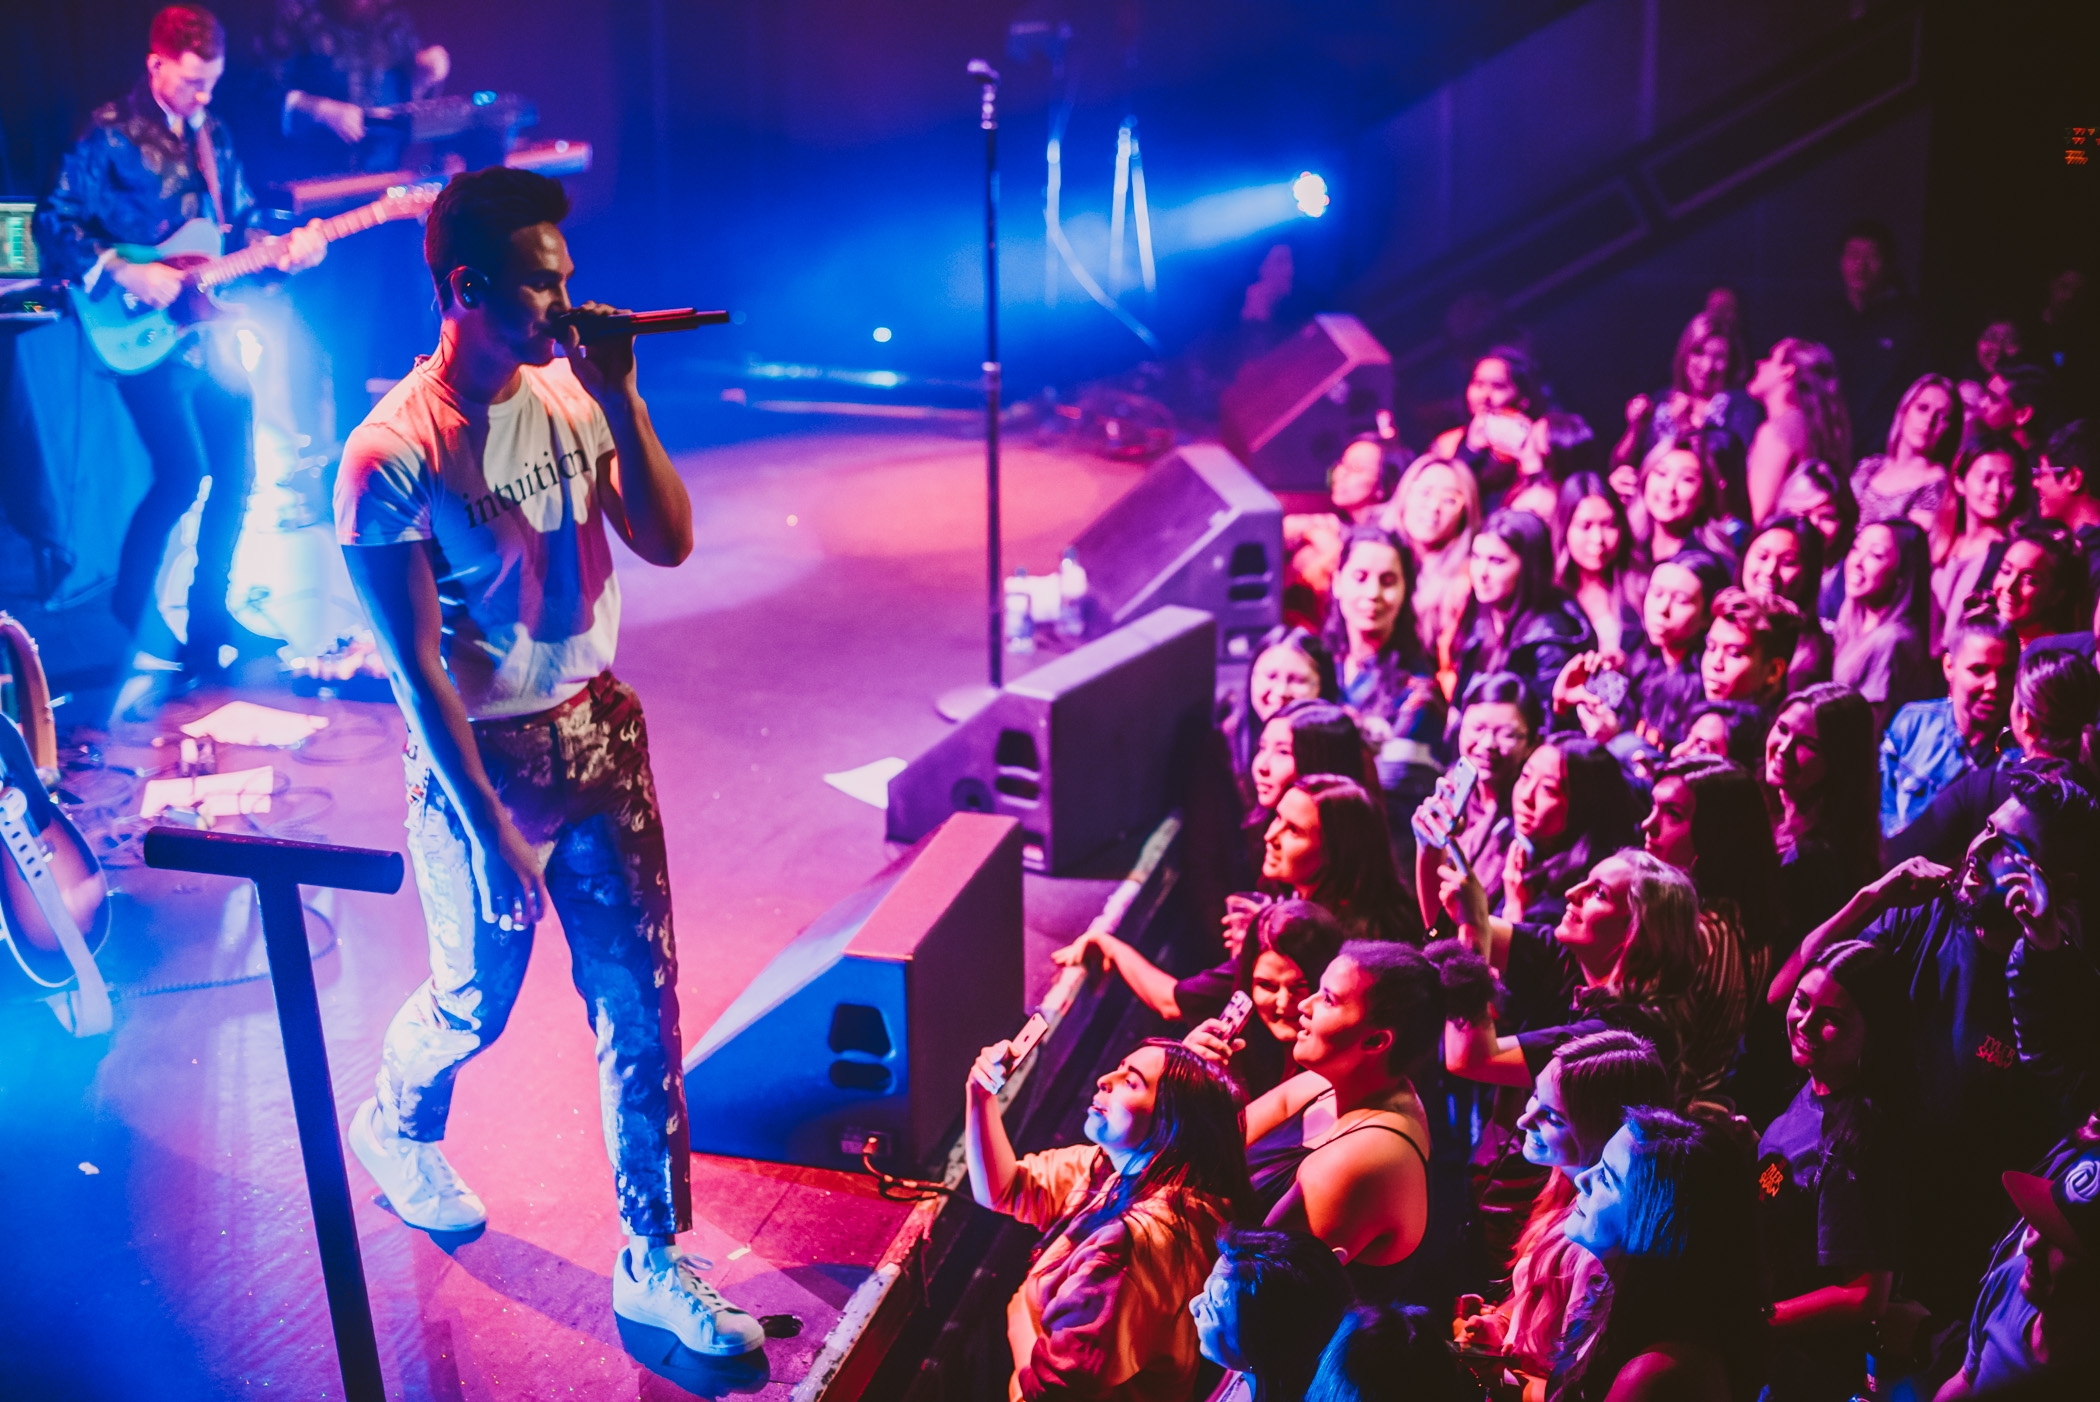 Tyler_Shaw-Venue-Timothy_Nguyen-20190131 (13 of 22).jpg